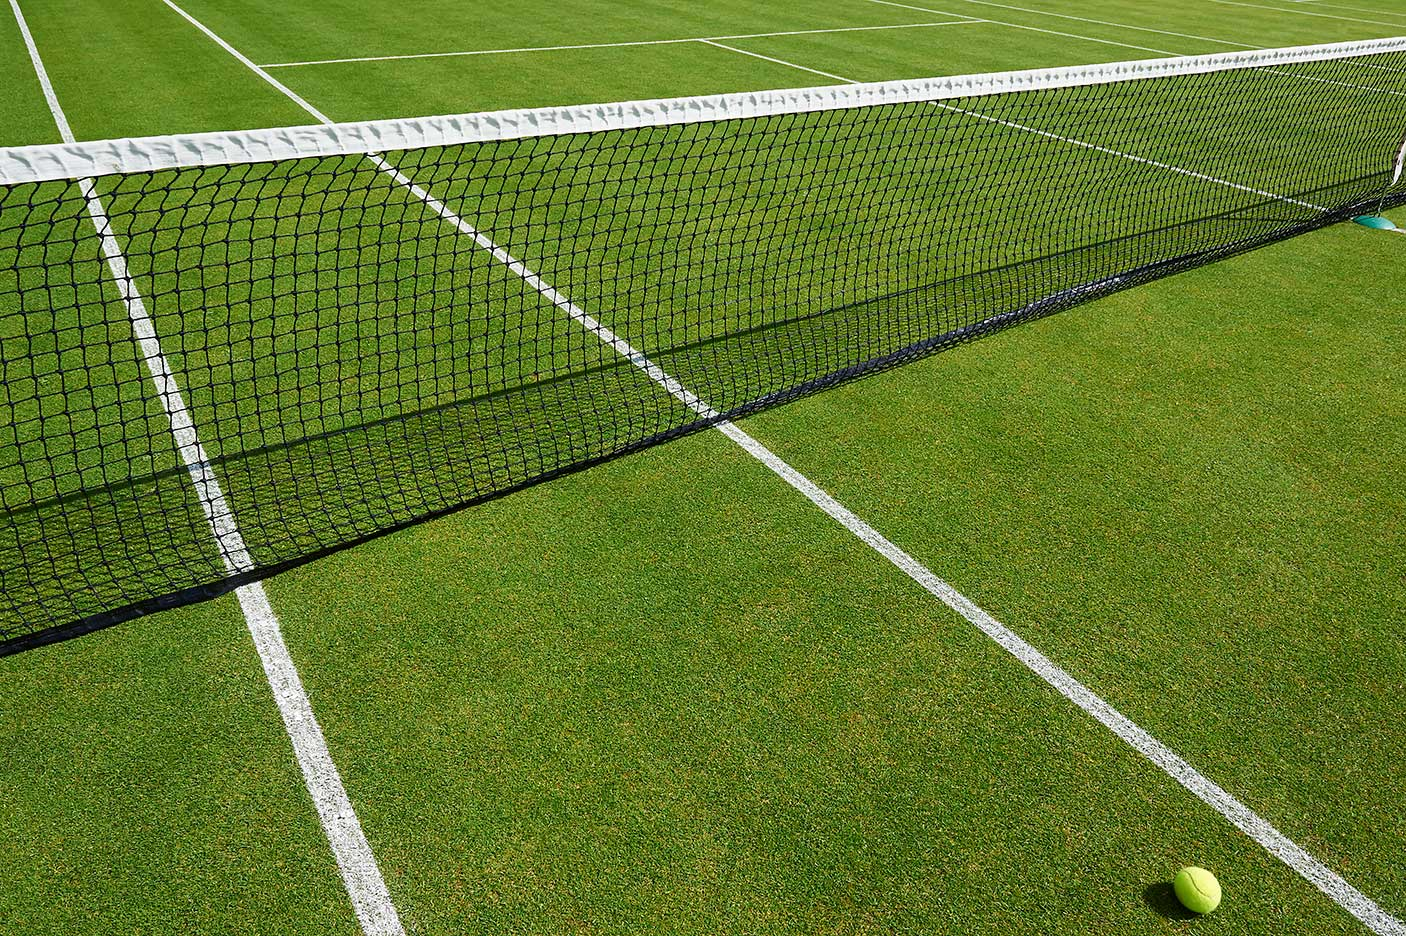 A tennis court and ball